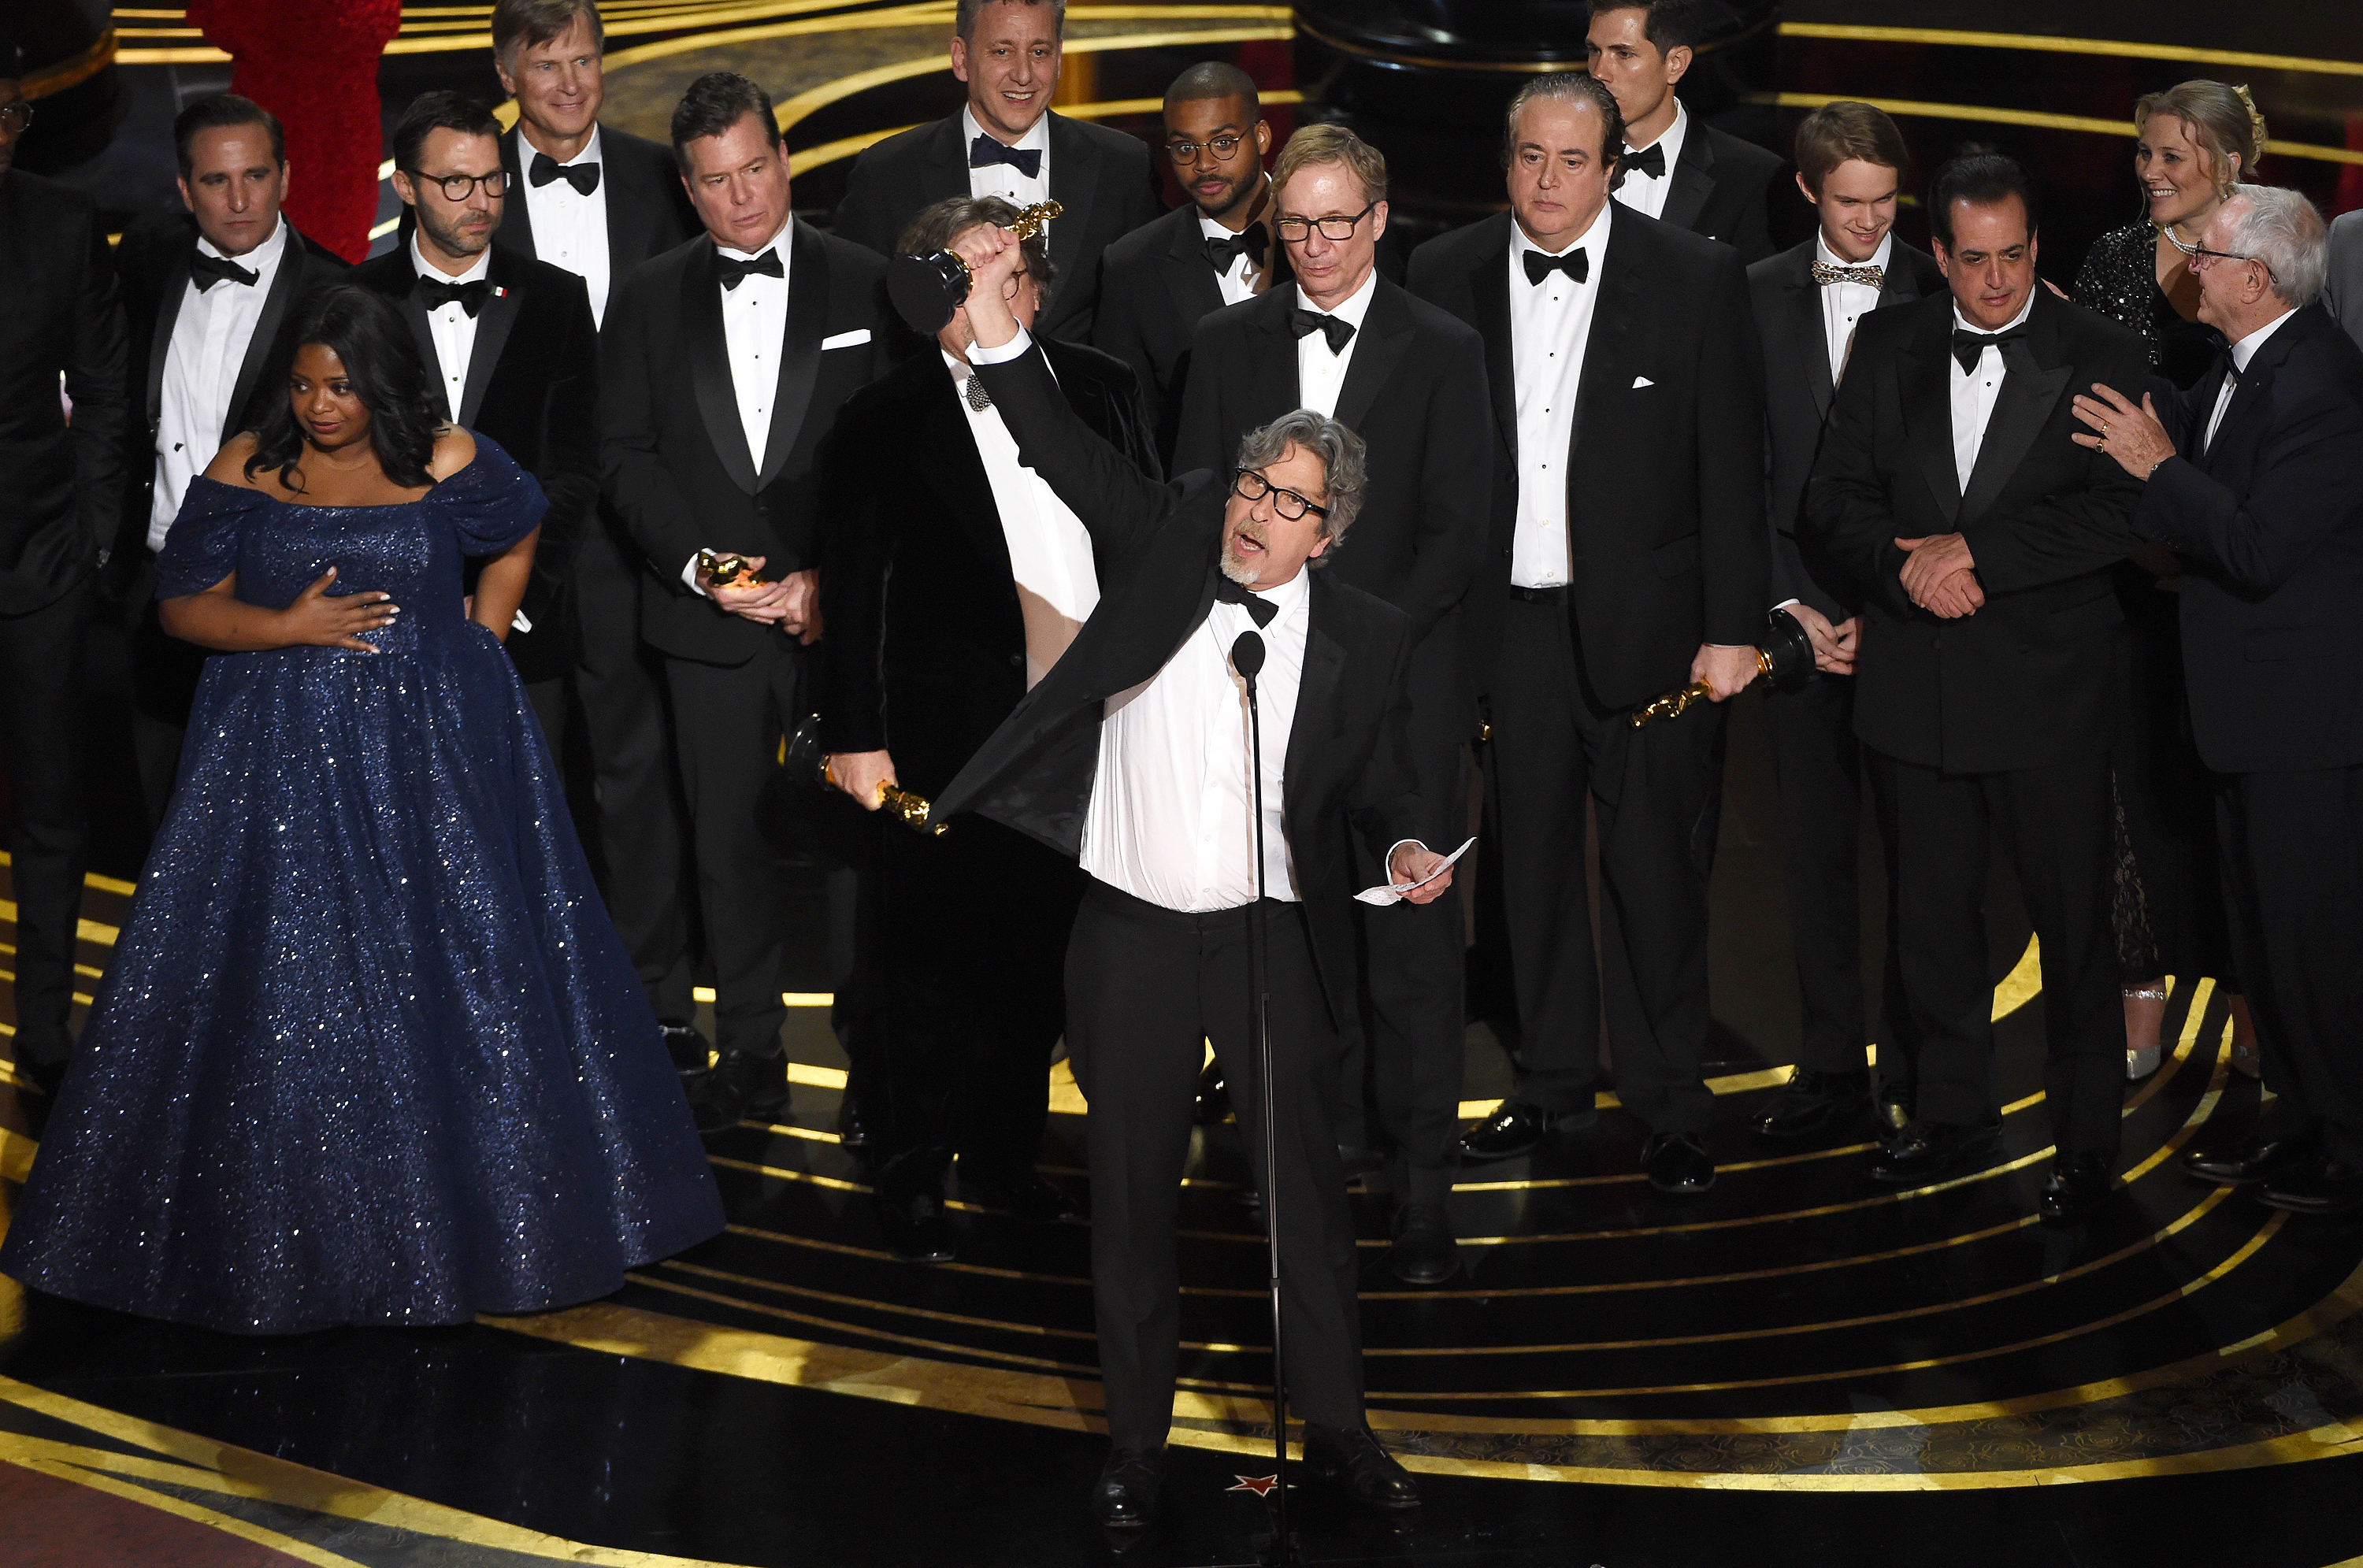 Green Book won Best Picture at the Oscars. Credit: PA